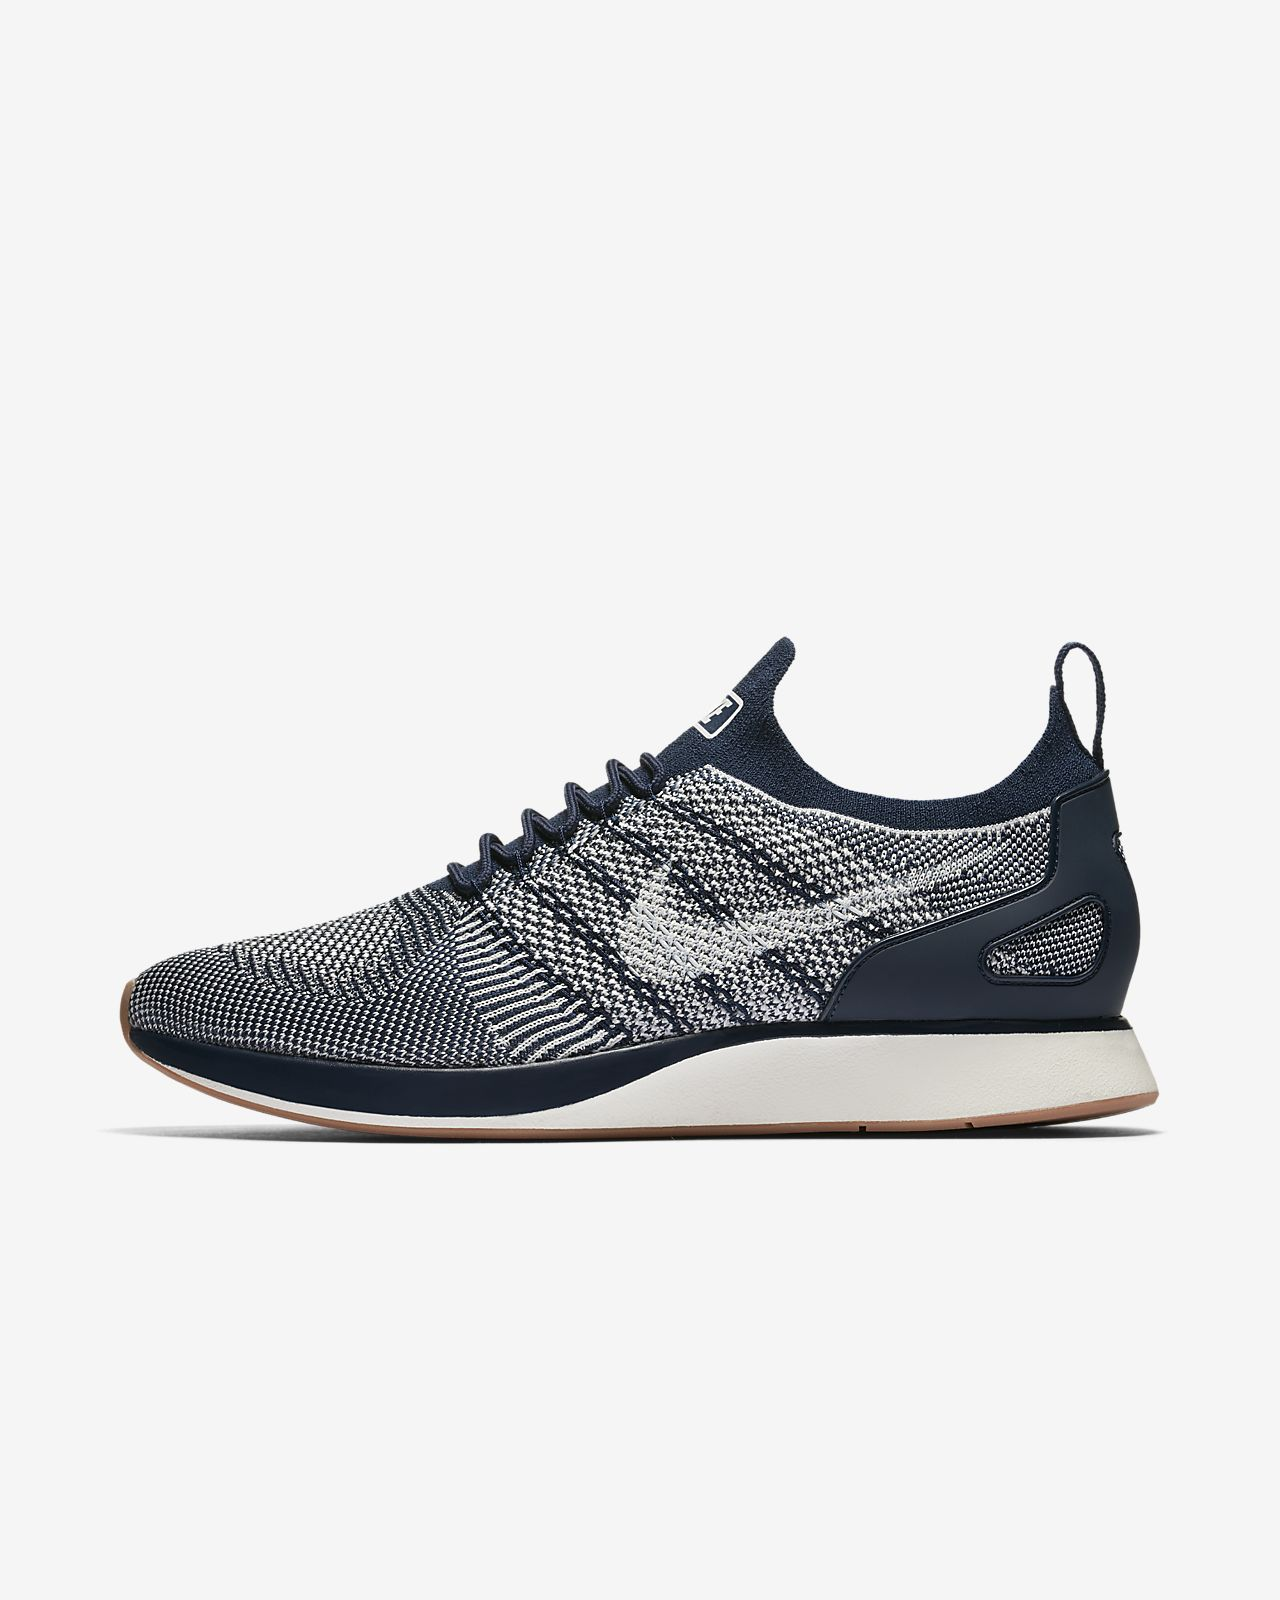 Nike Air Zoom Mariah Flyknit Racer Men's Lifestyle Shoes Violet/Blue/White/Black wG4216C